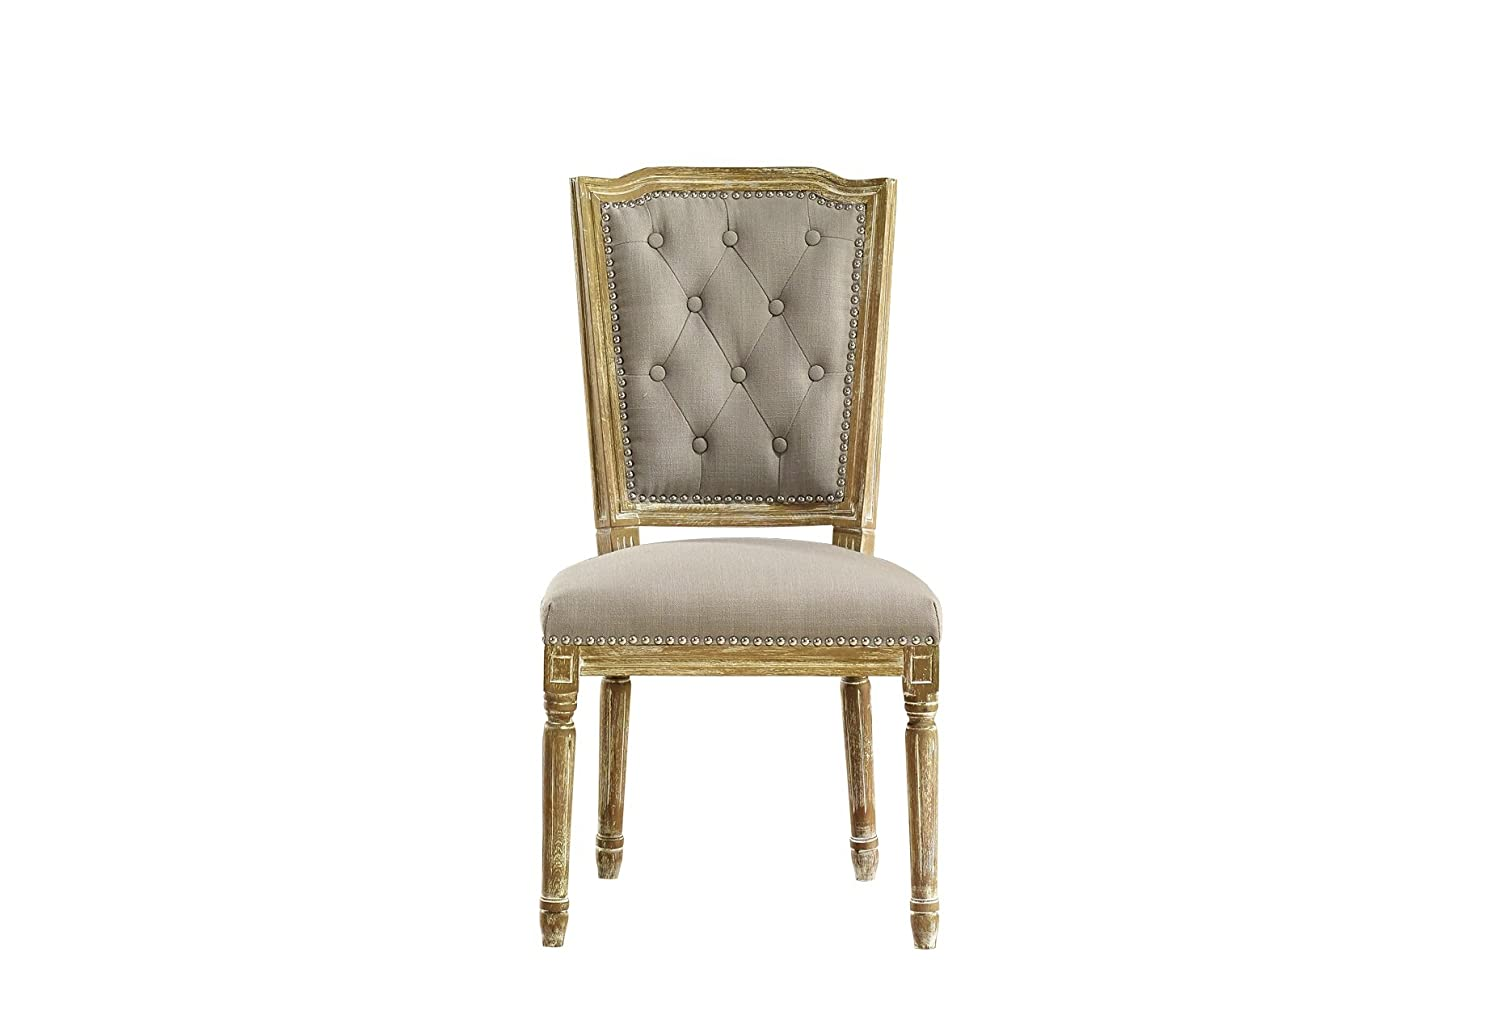 Super Baxton Studio Estelle Shabby Chic Rustic French Country Cottage Weathered Oak Linen Button Tufted Upholstered Dining Chair Medium Beige Home Interior And Landscaping Oversignezvosmurscom